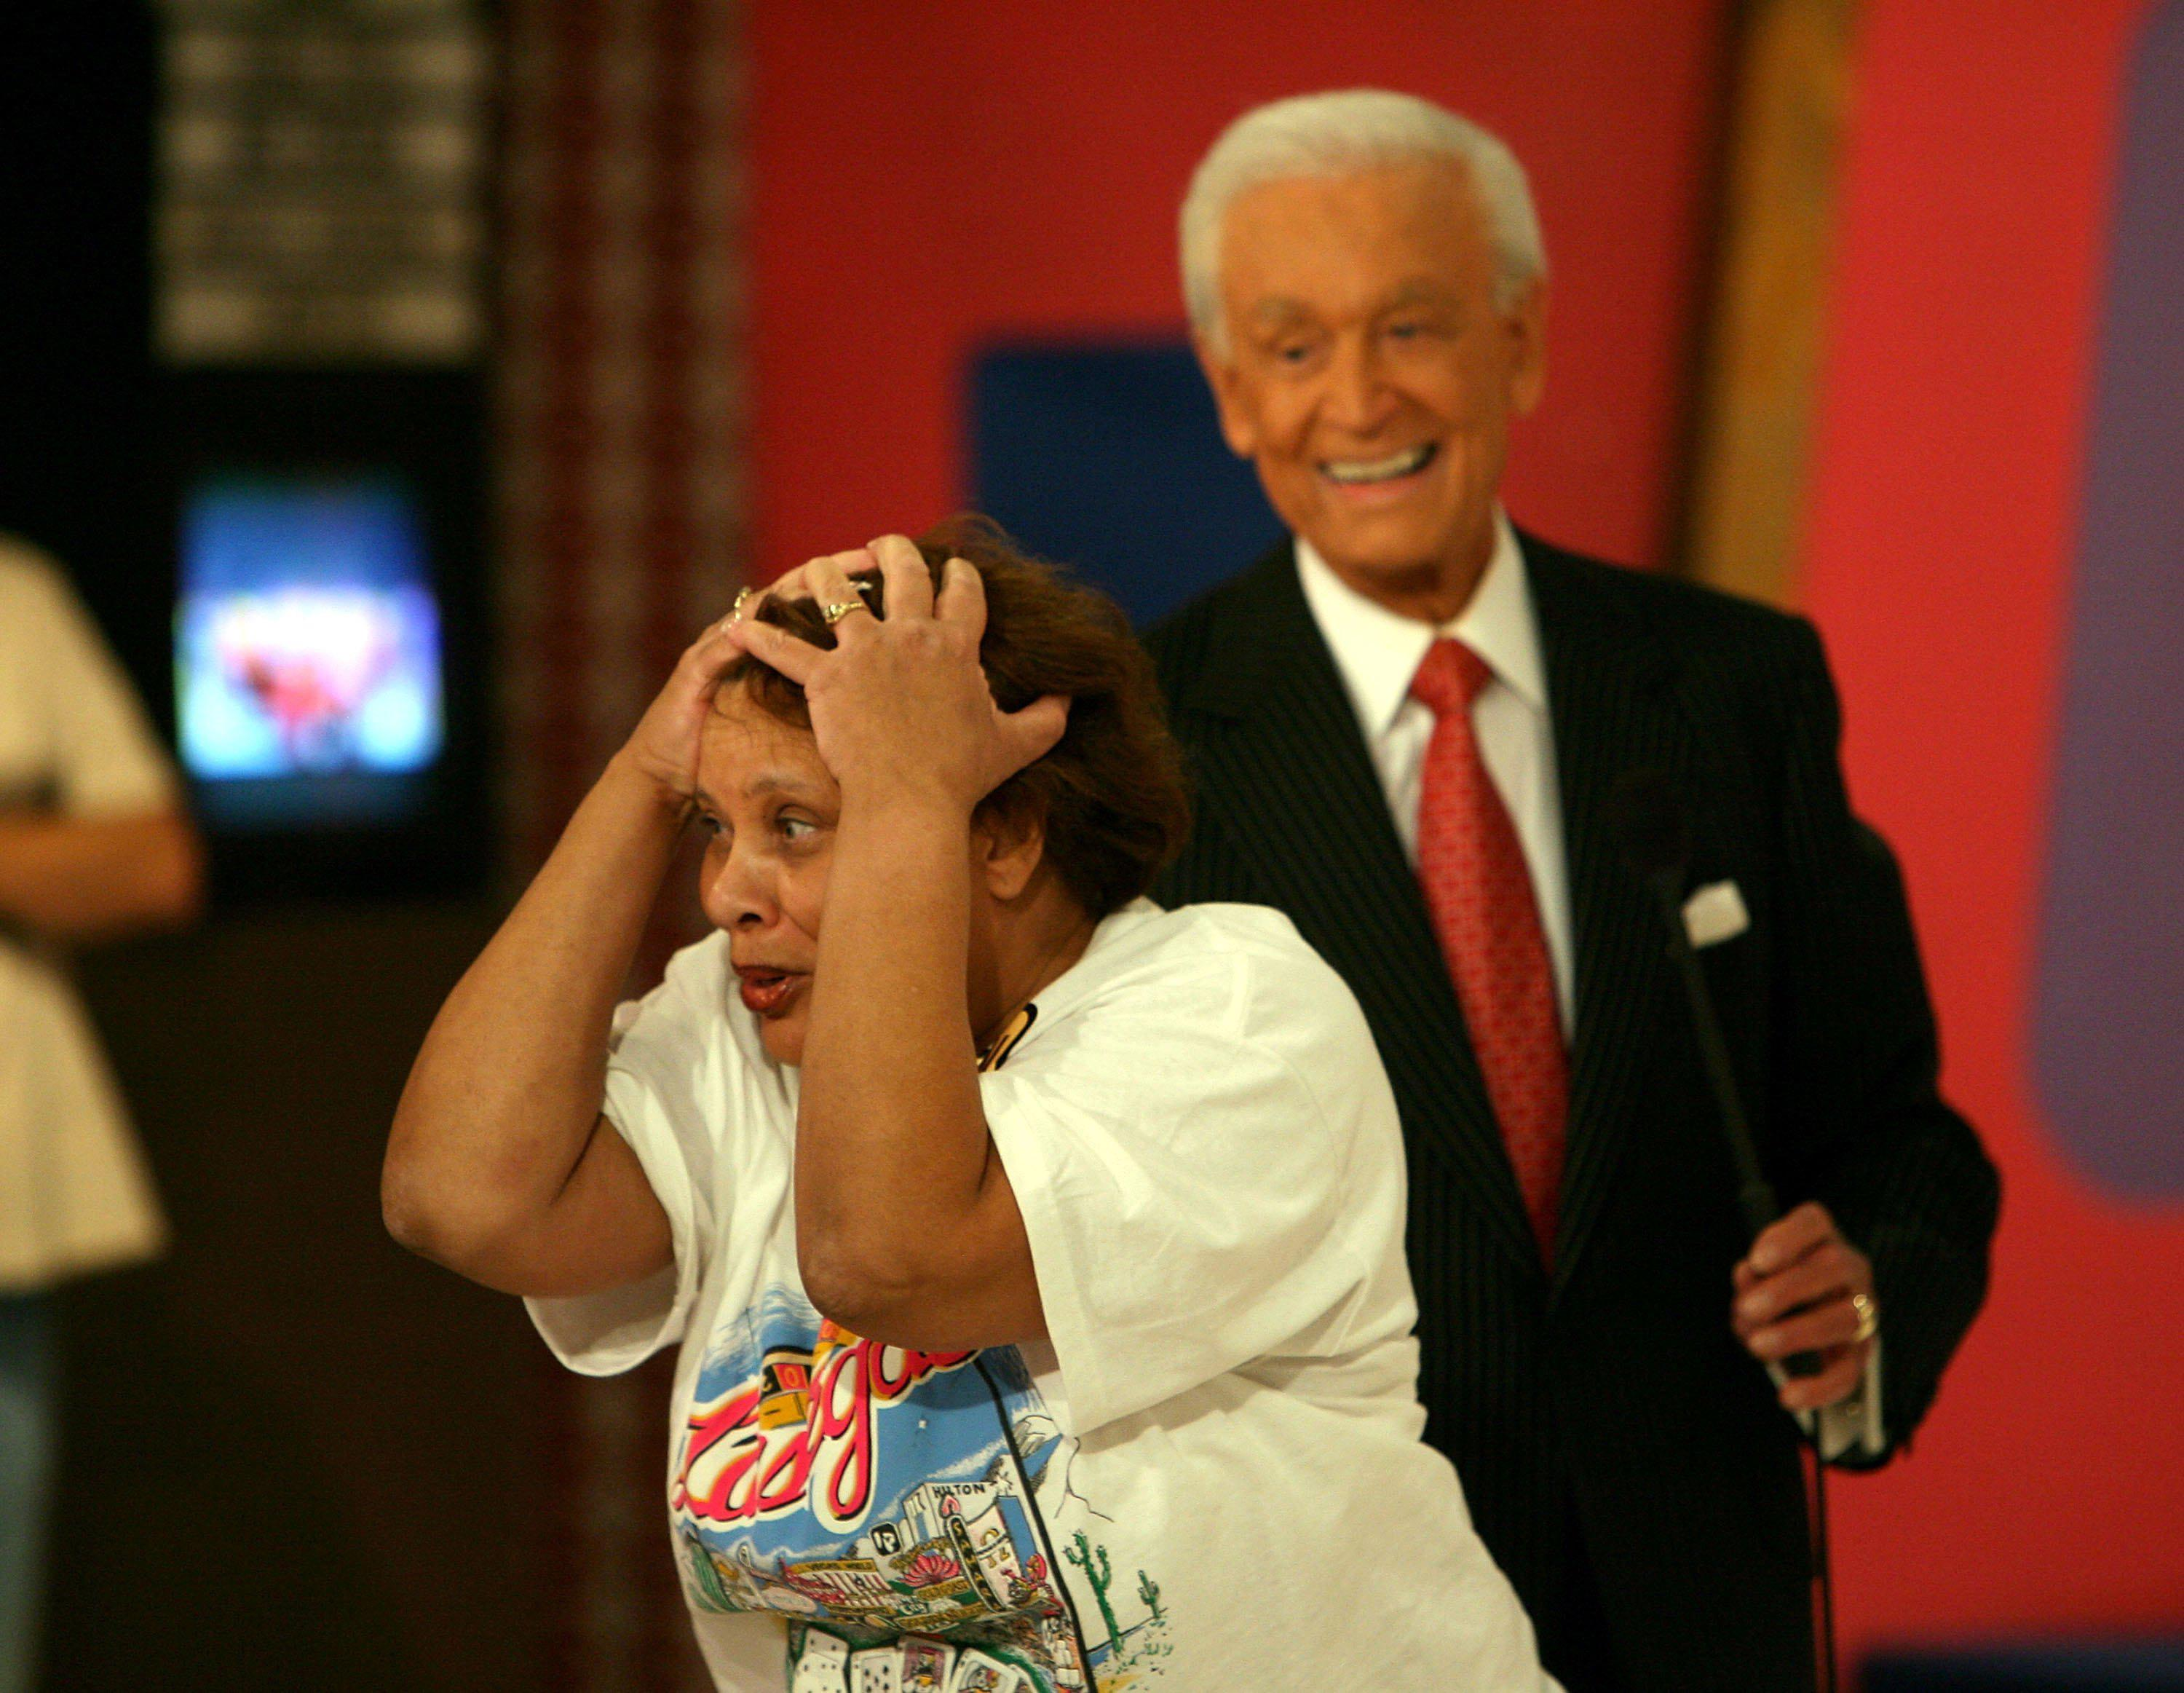 'The Price Is Right' 35th Season Premiere Taping